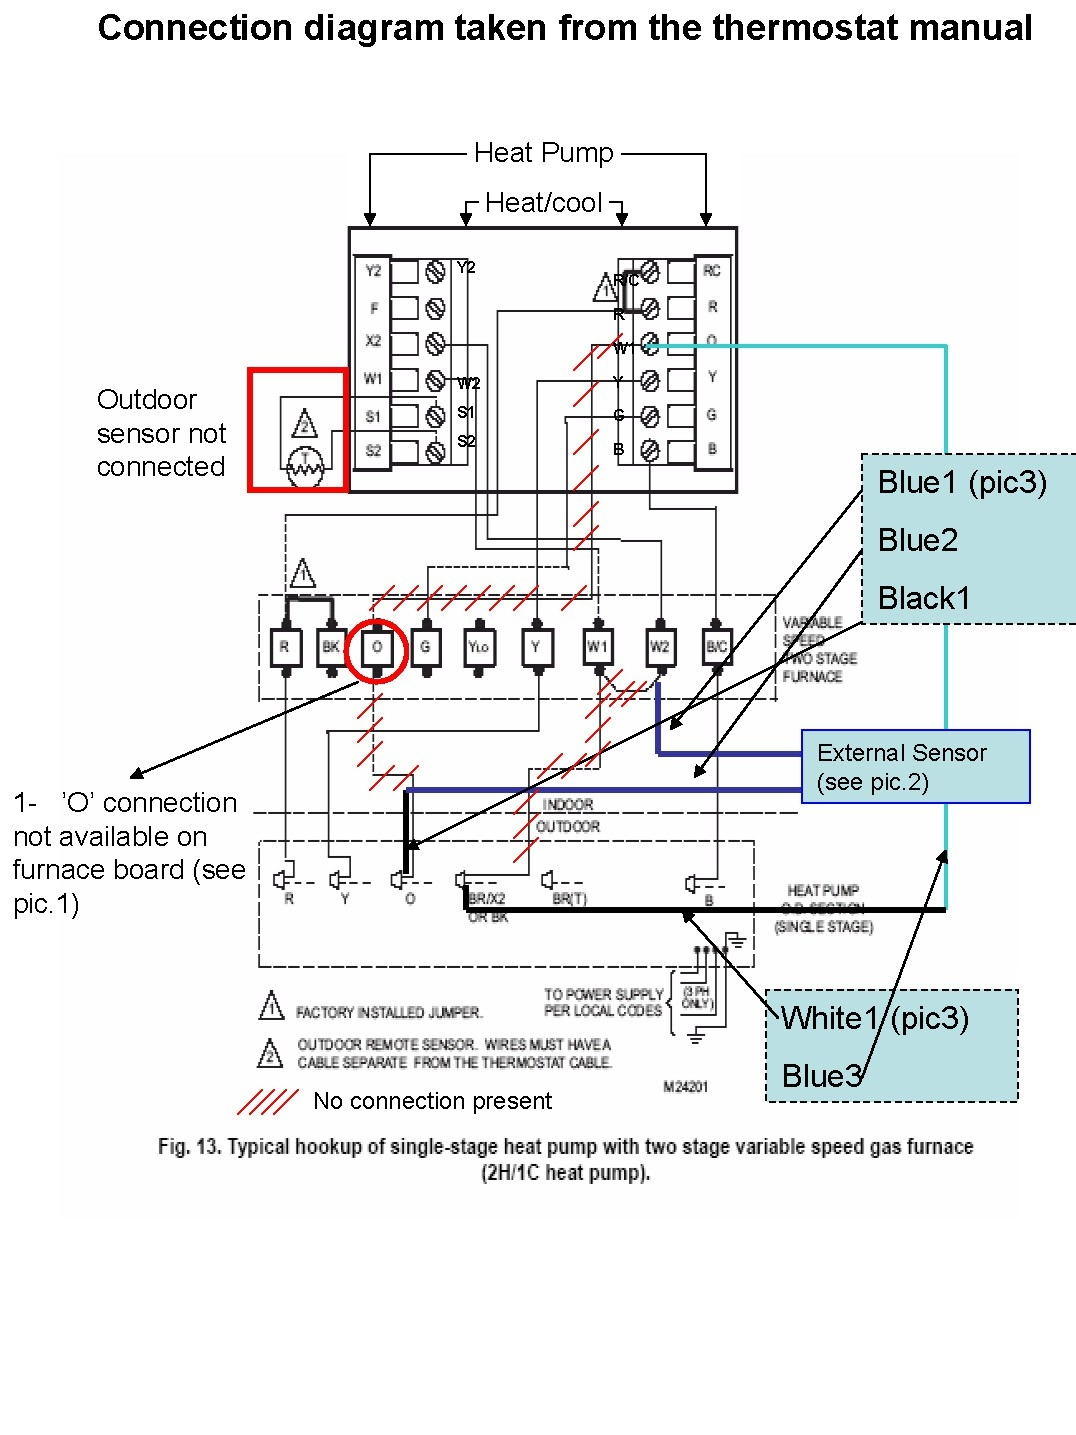 2 stage heat thermostat wiring diagram free picture 2 stage heat pump wiring diagram | free wiring diagram #4